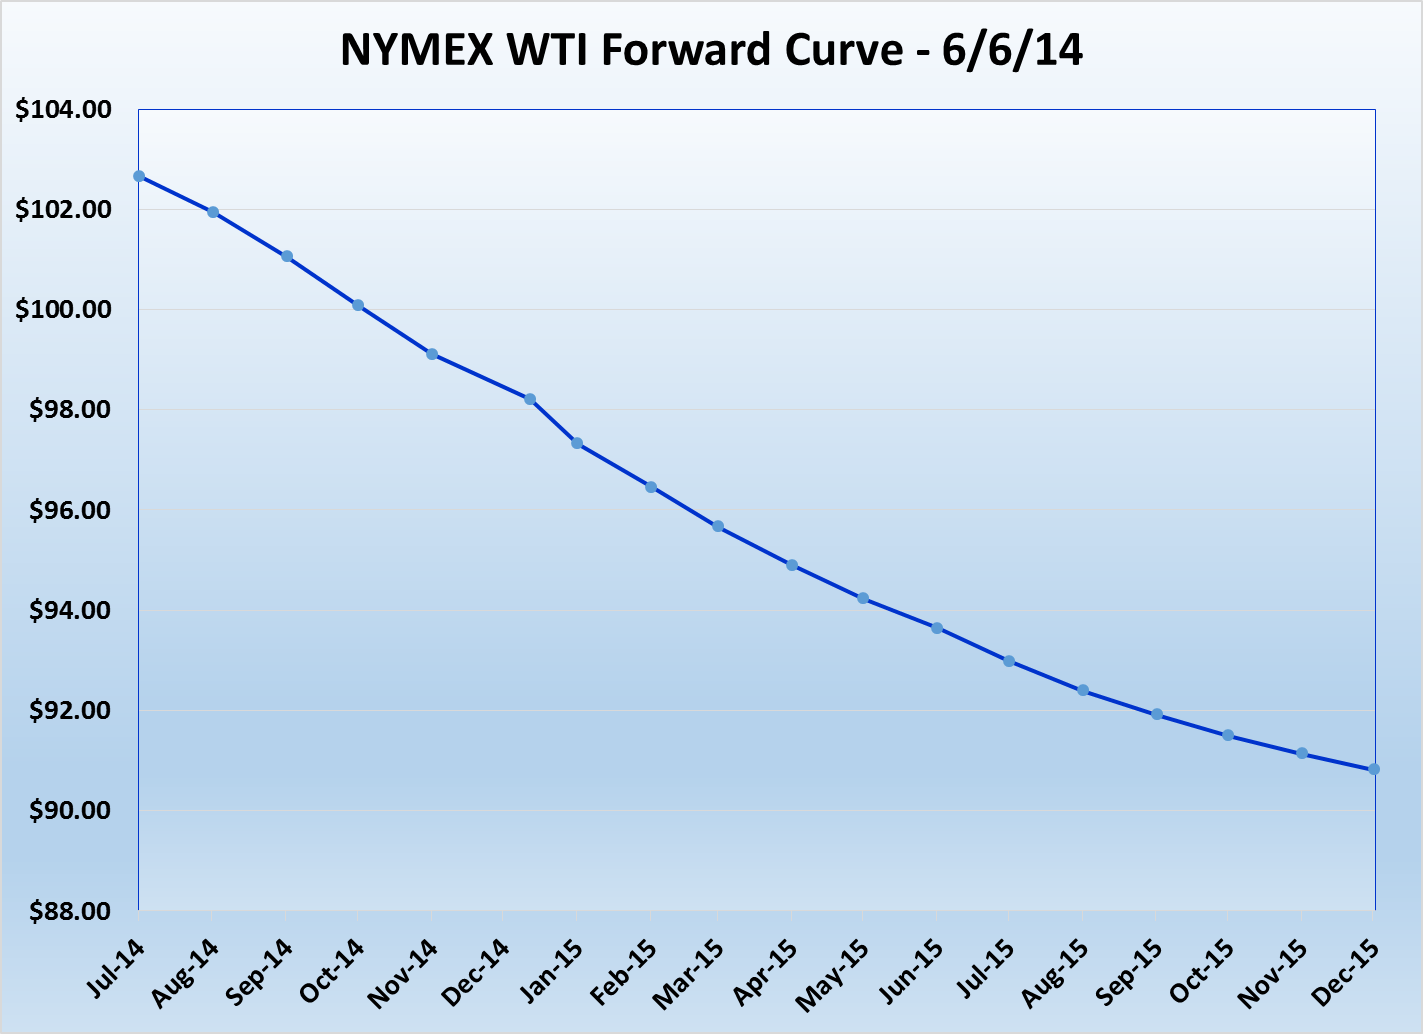 Source: NYMEX WTI Data on 6/6/2014